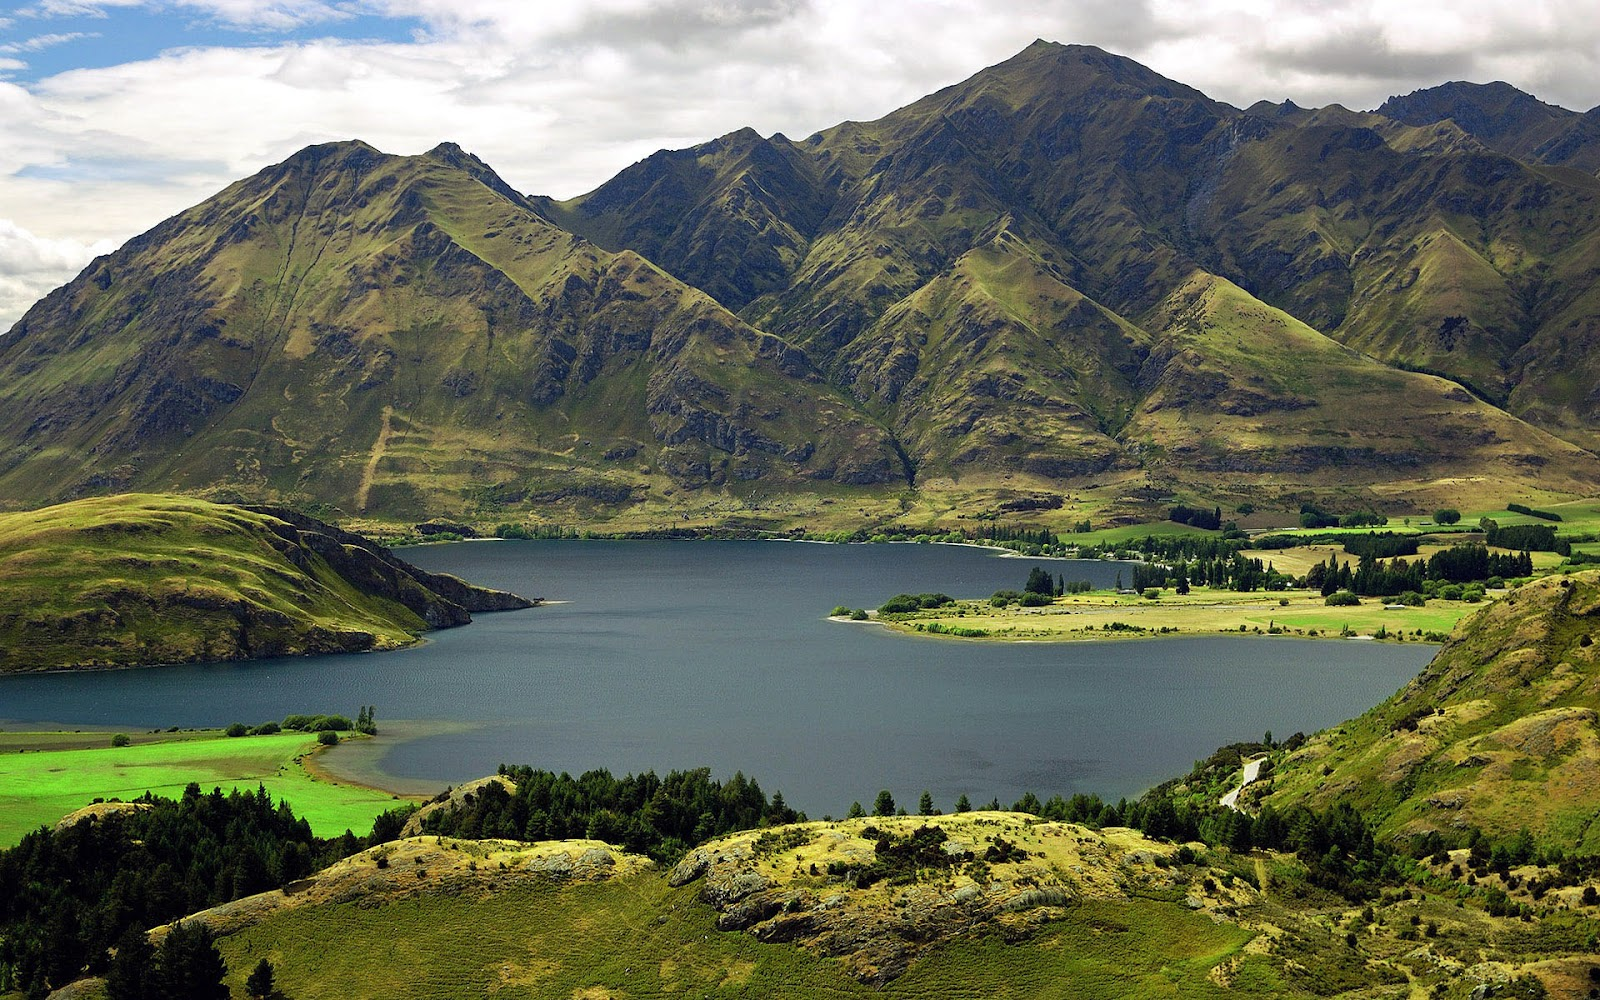 http://4.bp.blogspot.com/-jPe9qxWmP_U/UEhWnIkbVyI/AAAAAAAAA1s/s3TyxQW4LMg/s1600/Beautiful-lake-wanaka-New-Zealand-full-HD-nature-background-wallpaper-for-laptop-widescreen.jpg